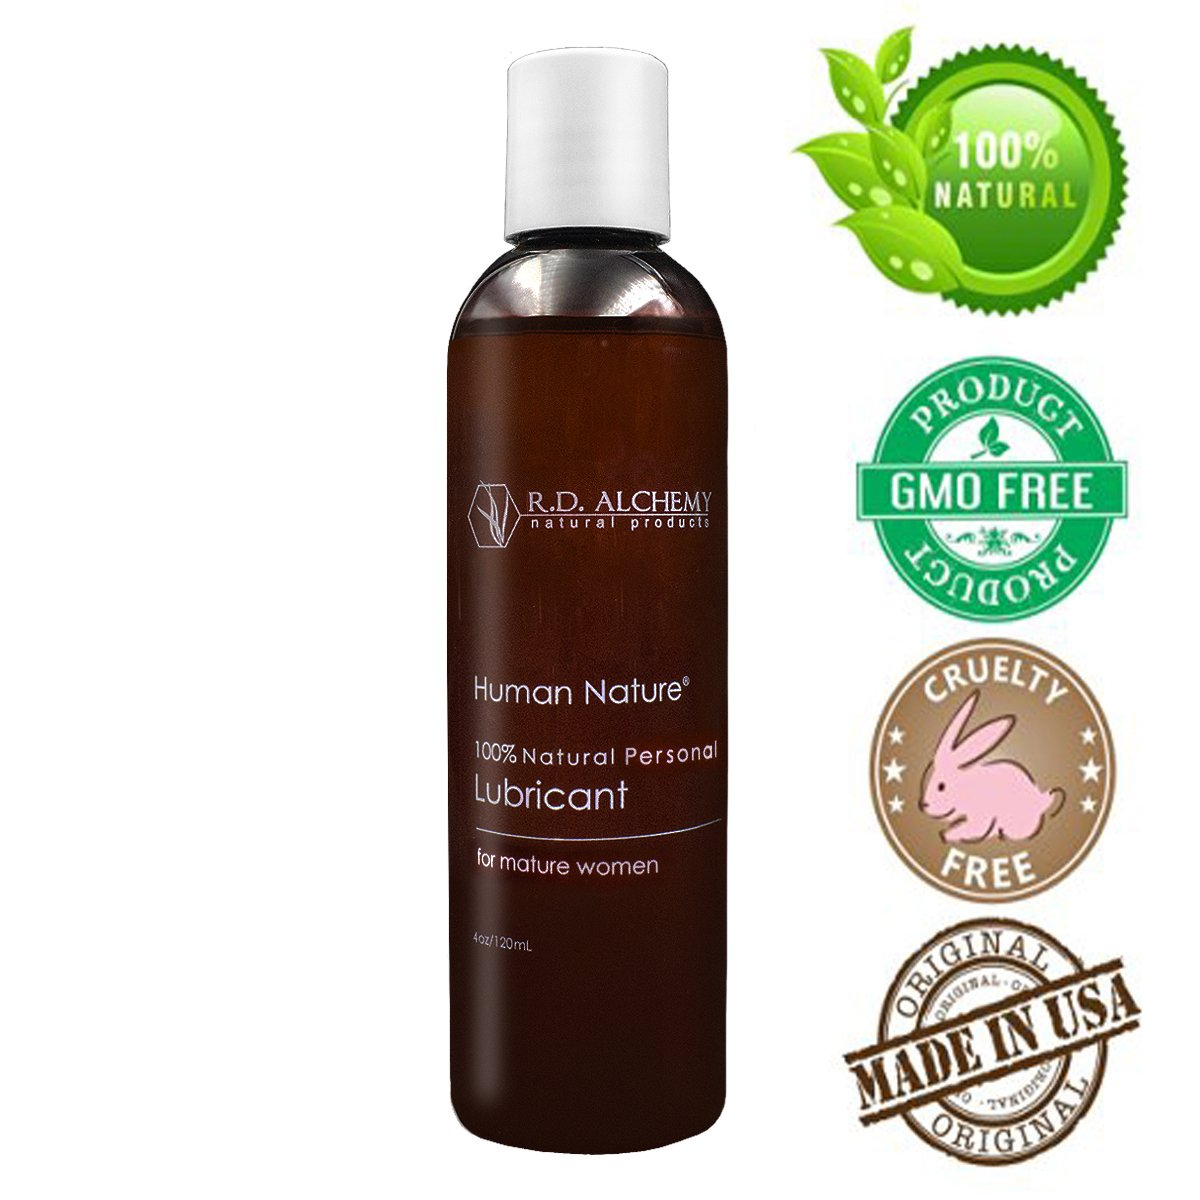 100% Natural & Organic Moisturizer and Personal Lubricant for Dryness in Mature Women. Long-lasting feminine lubrication for personal use and Sex. NON Sticky! (4 Fl Oz, Regular)